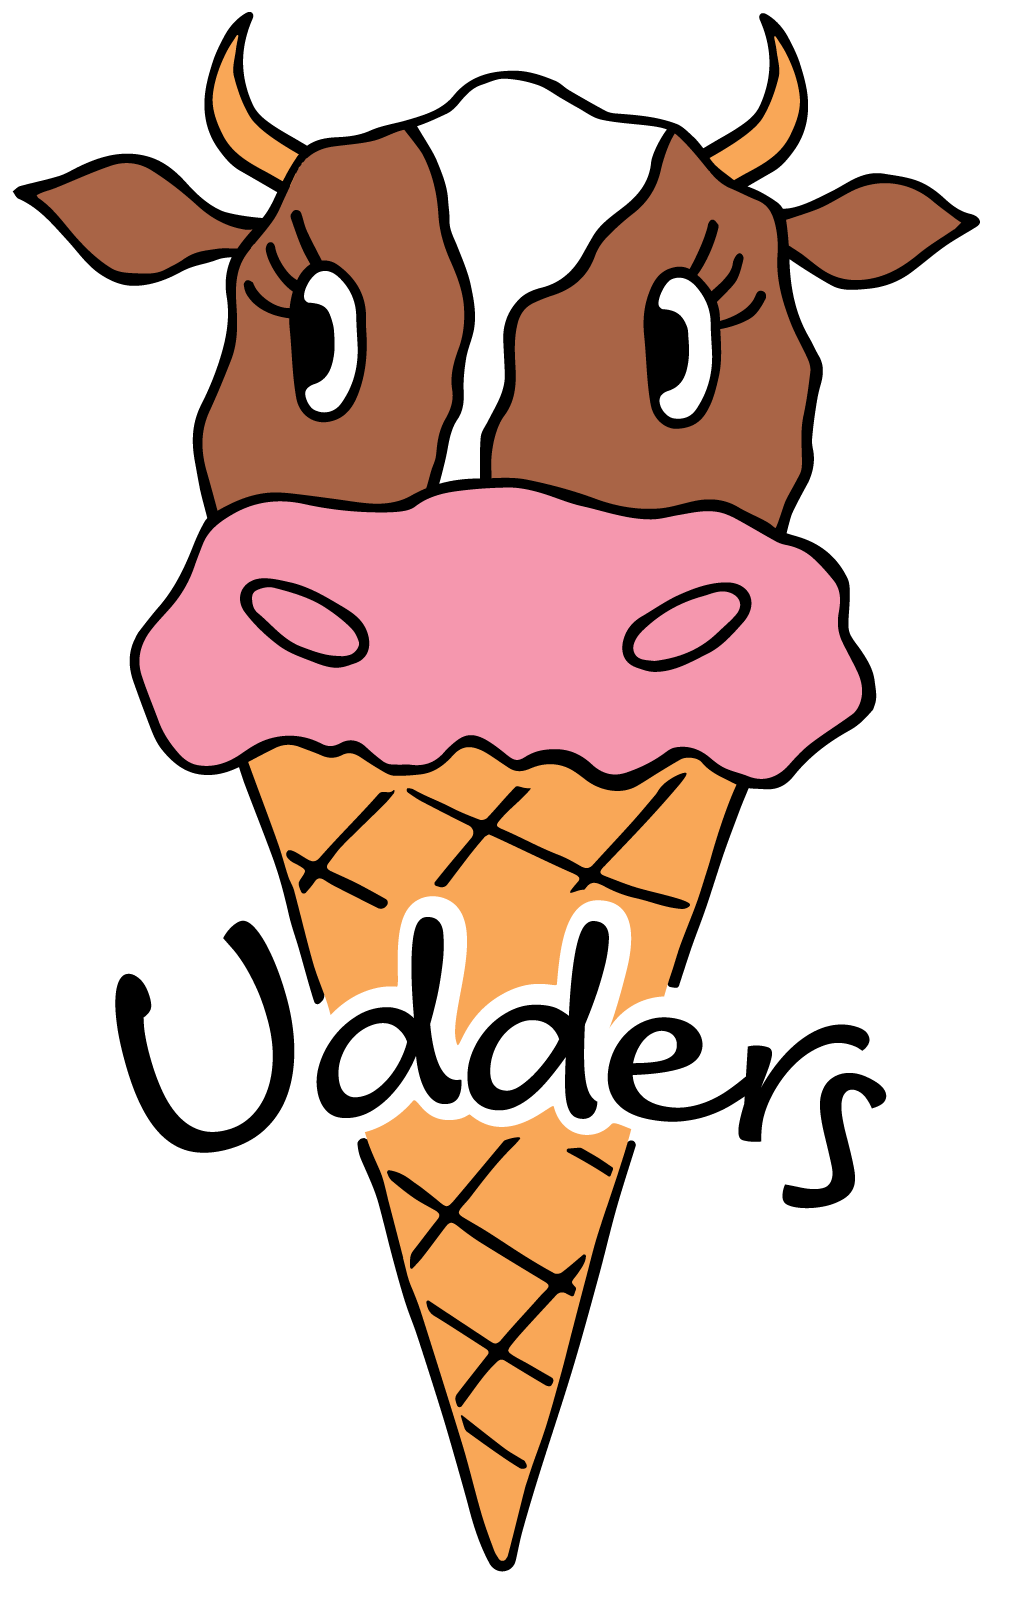 Udders Homepage